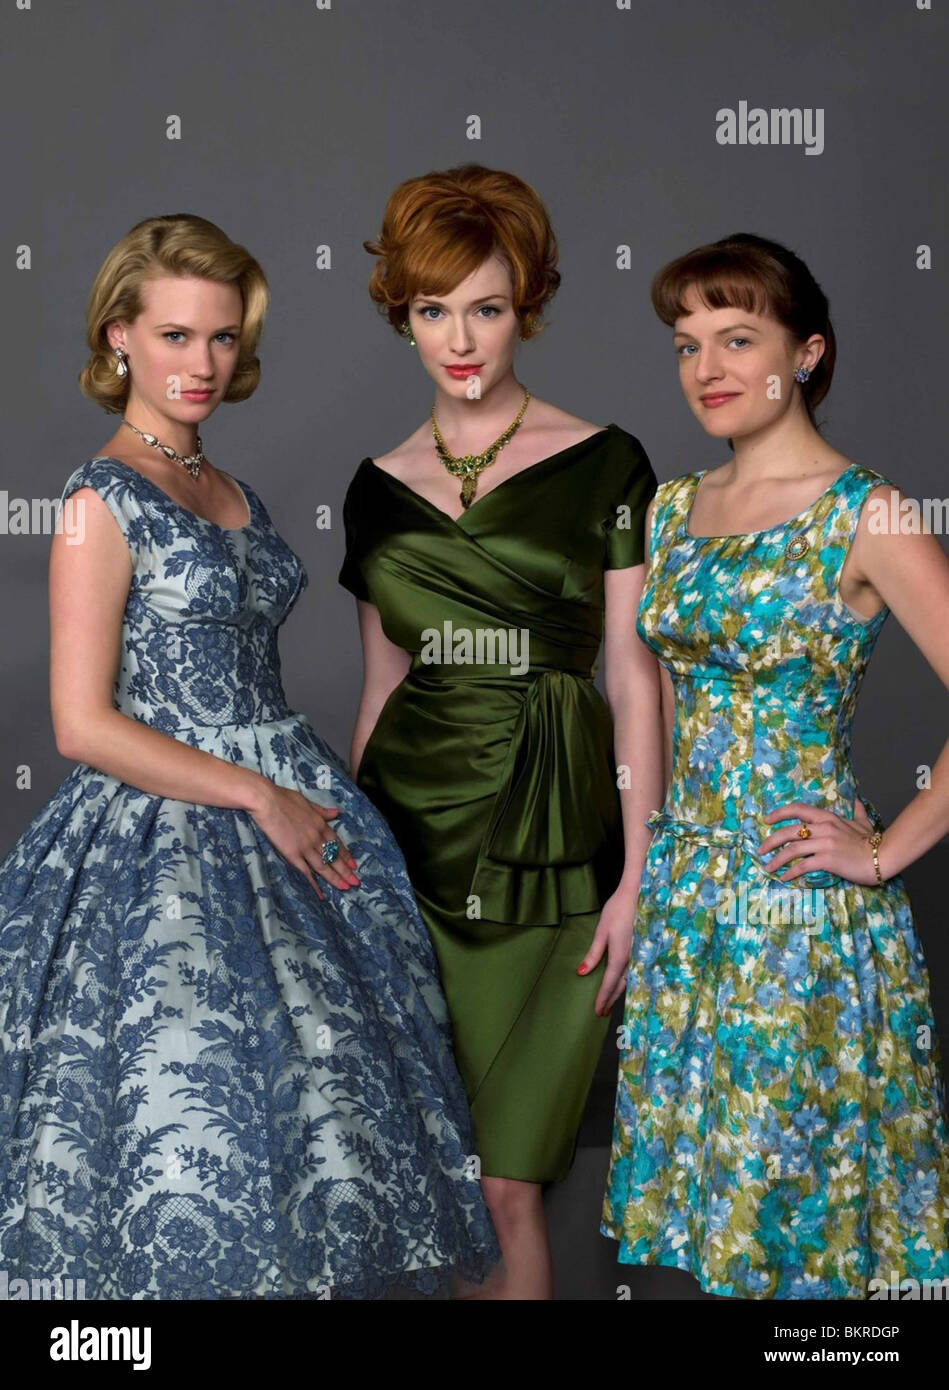 MAD MEN (TV) (2007) CHRISTINA HENDRICKS, ELISABETH MOSS, JANUARY JONES 001 - Stock Image